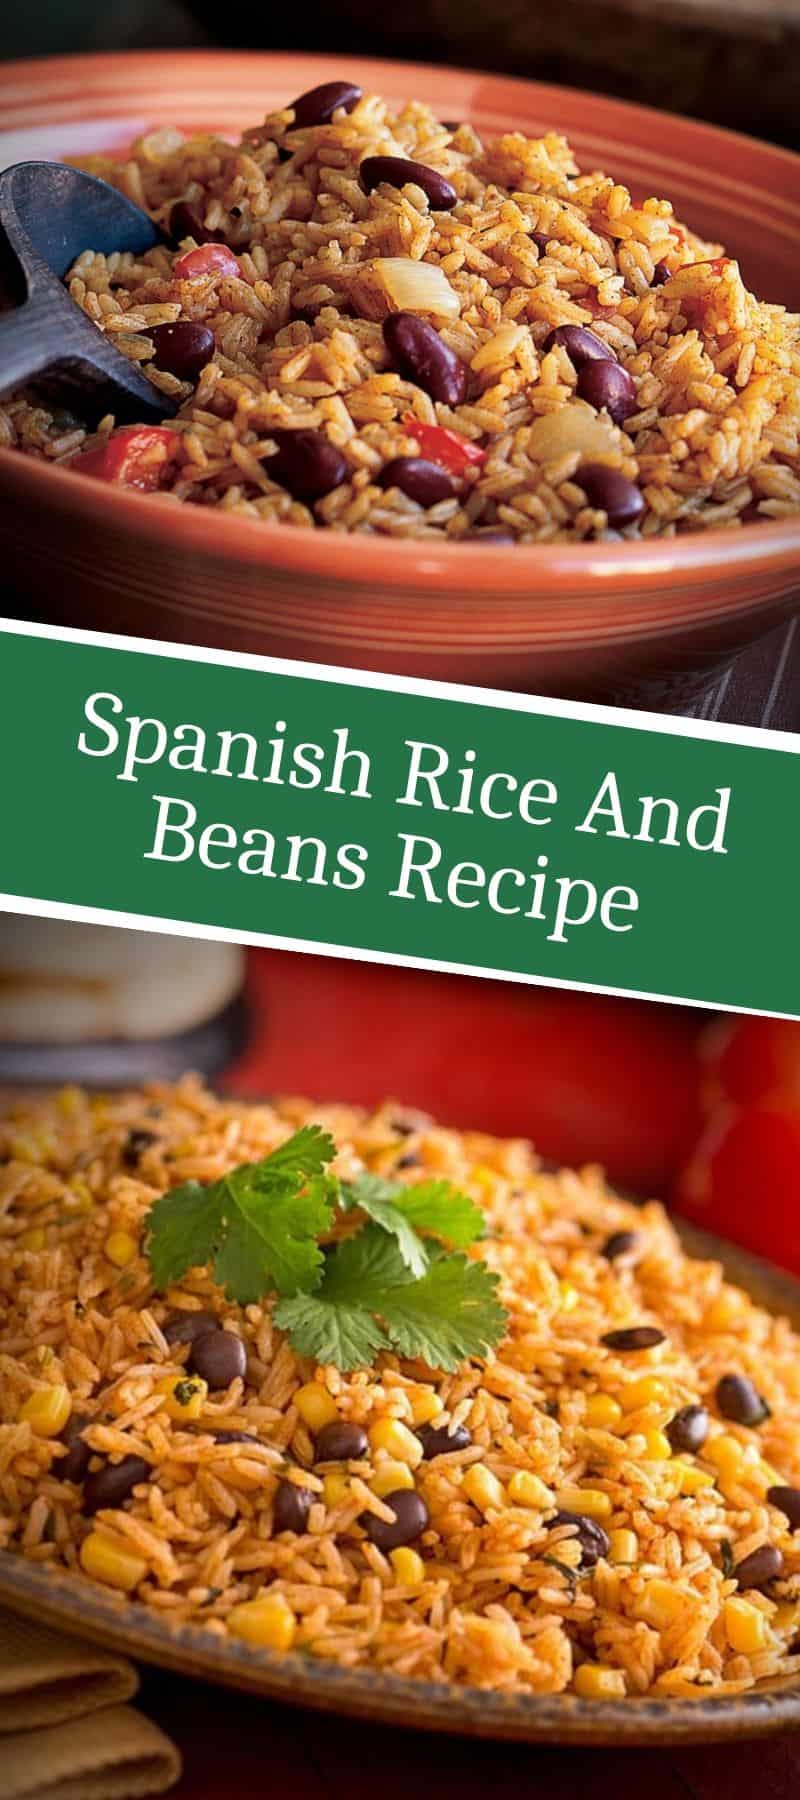 Spanish Rice And Beans Recipe 3